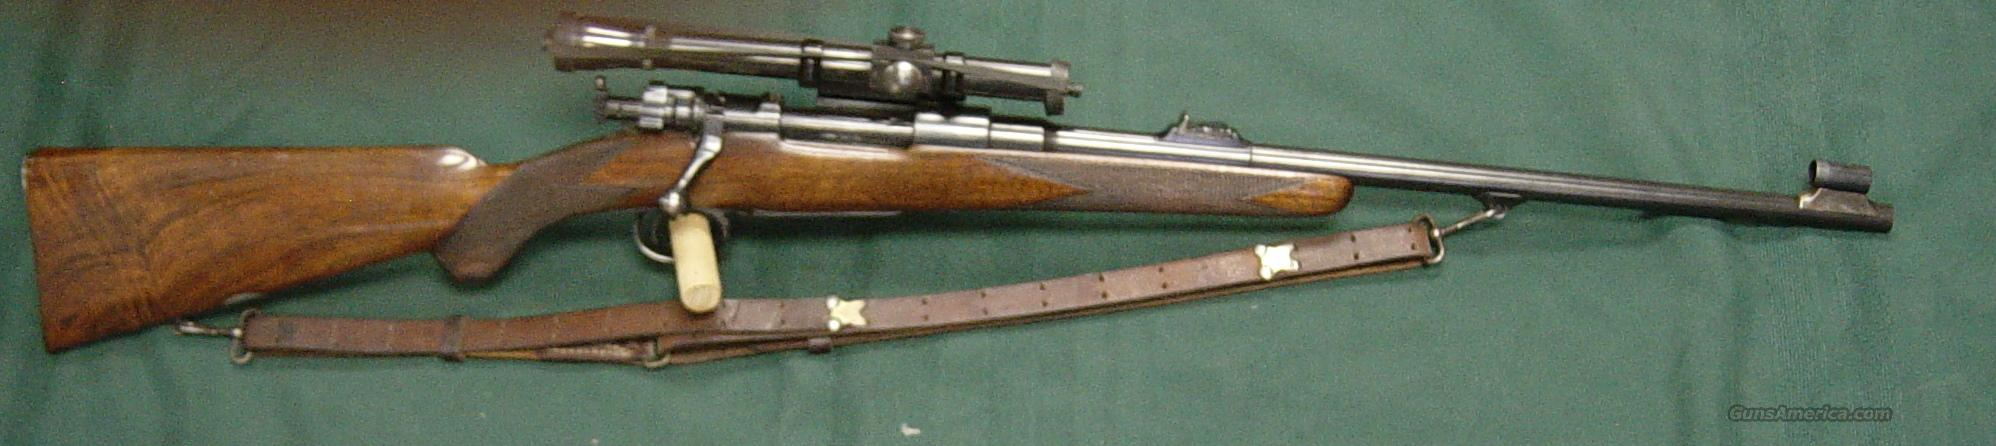 J.Rigby Mauser action rifle  Guns > Rifles > Rigby Rifles